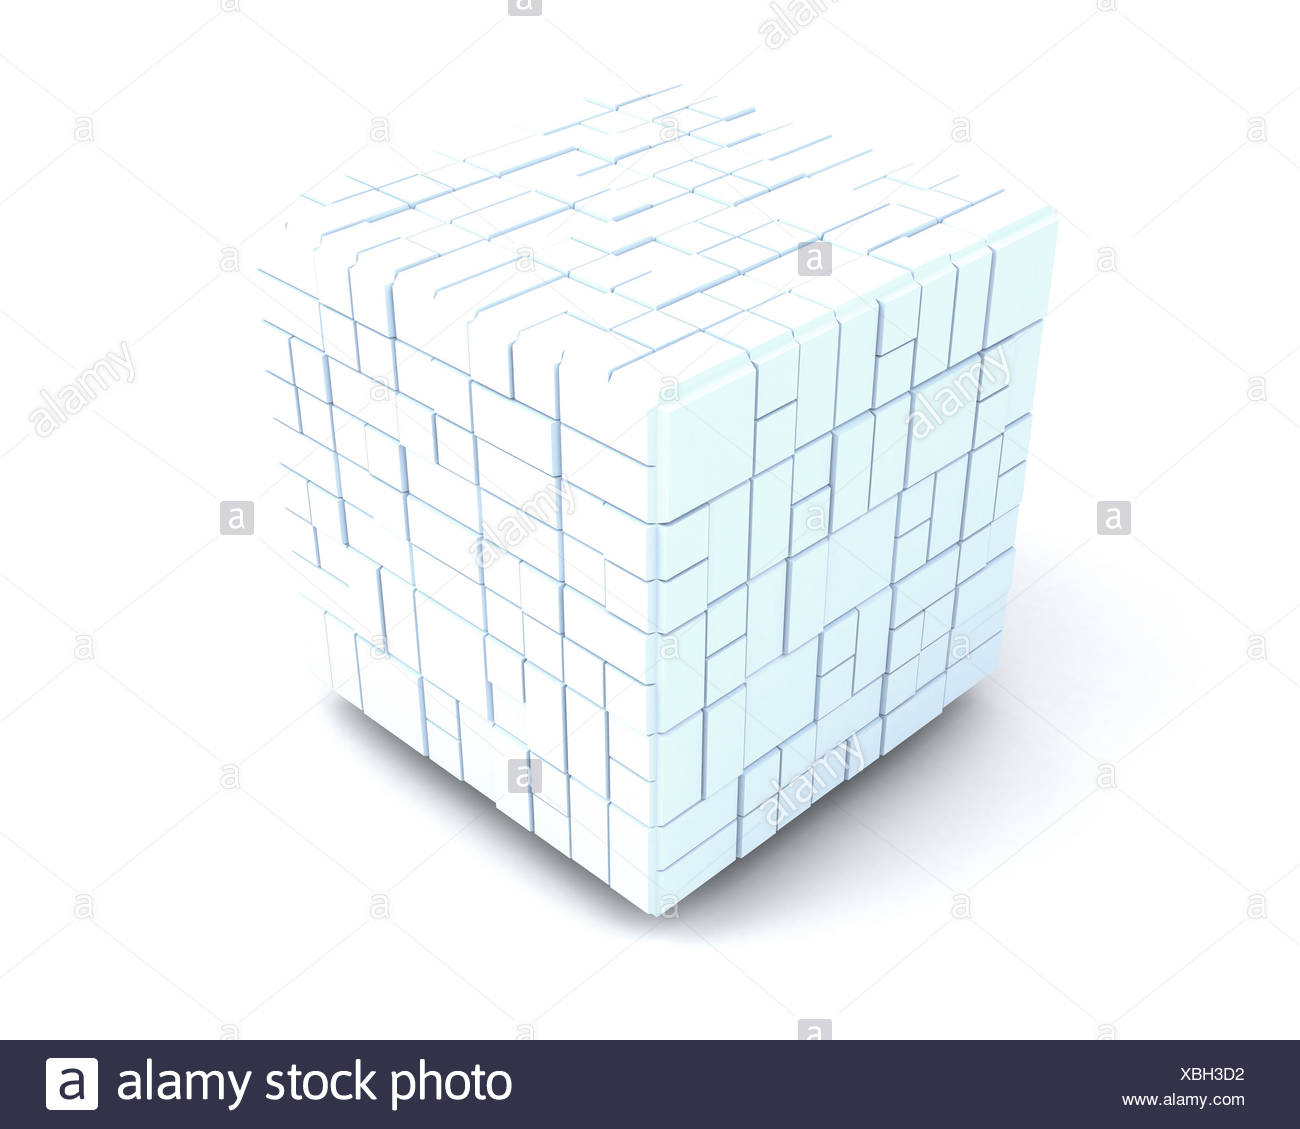 big white cube consisting of many small ones. team - Stock Image